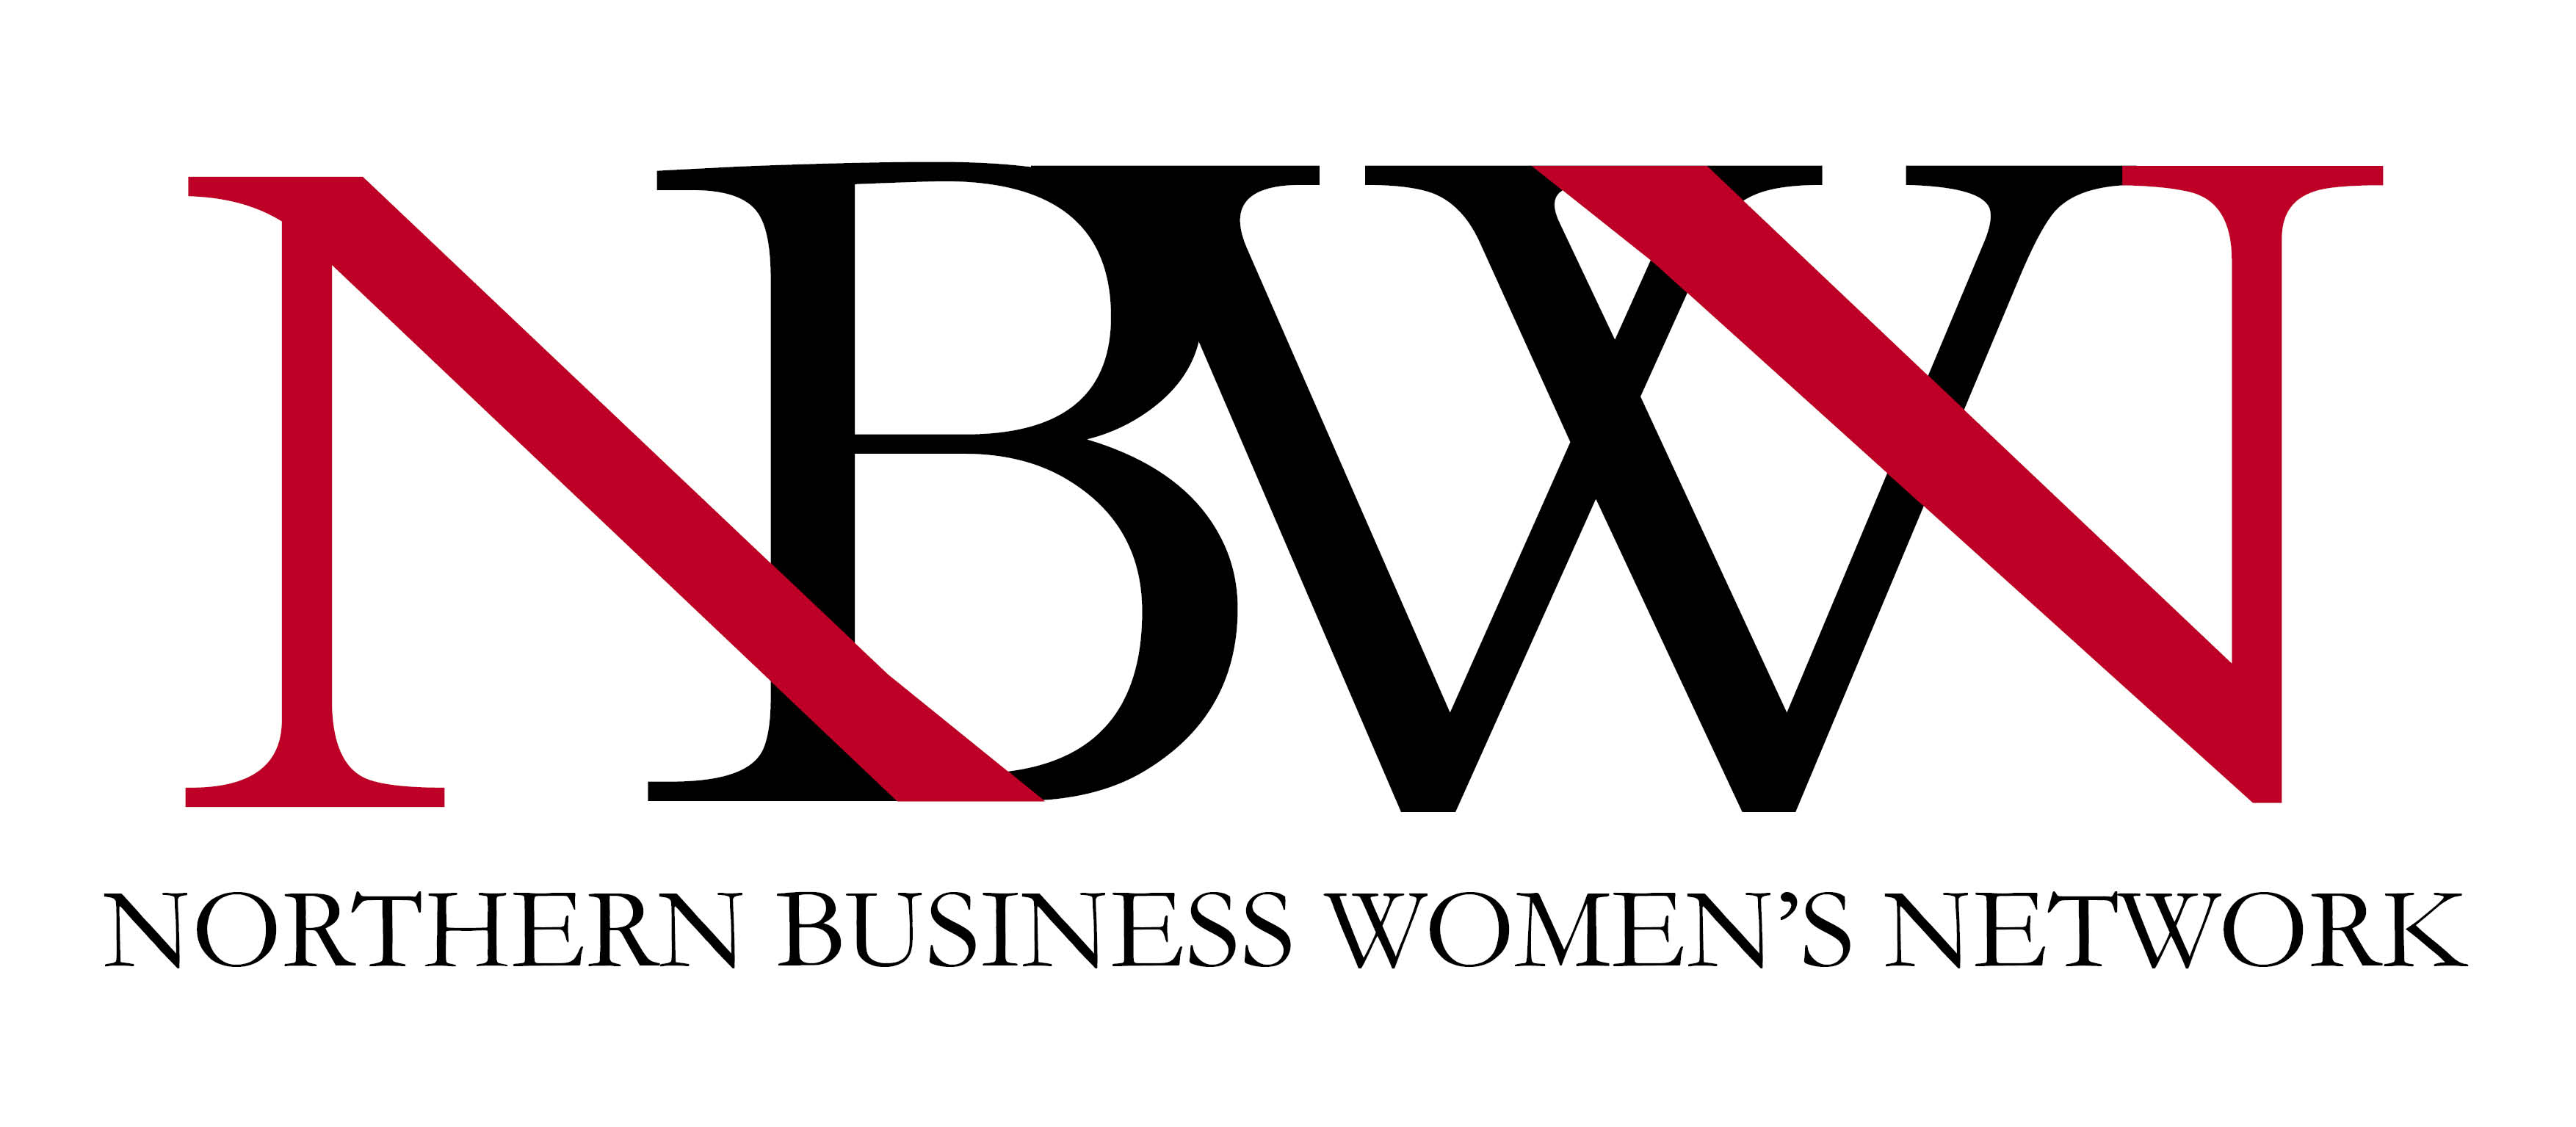 Northern Business Women's Network